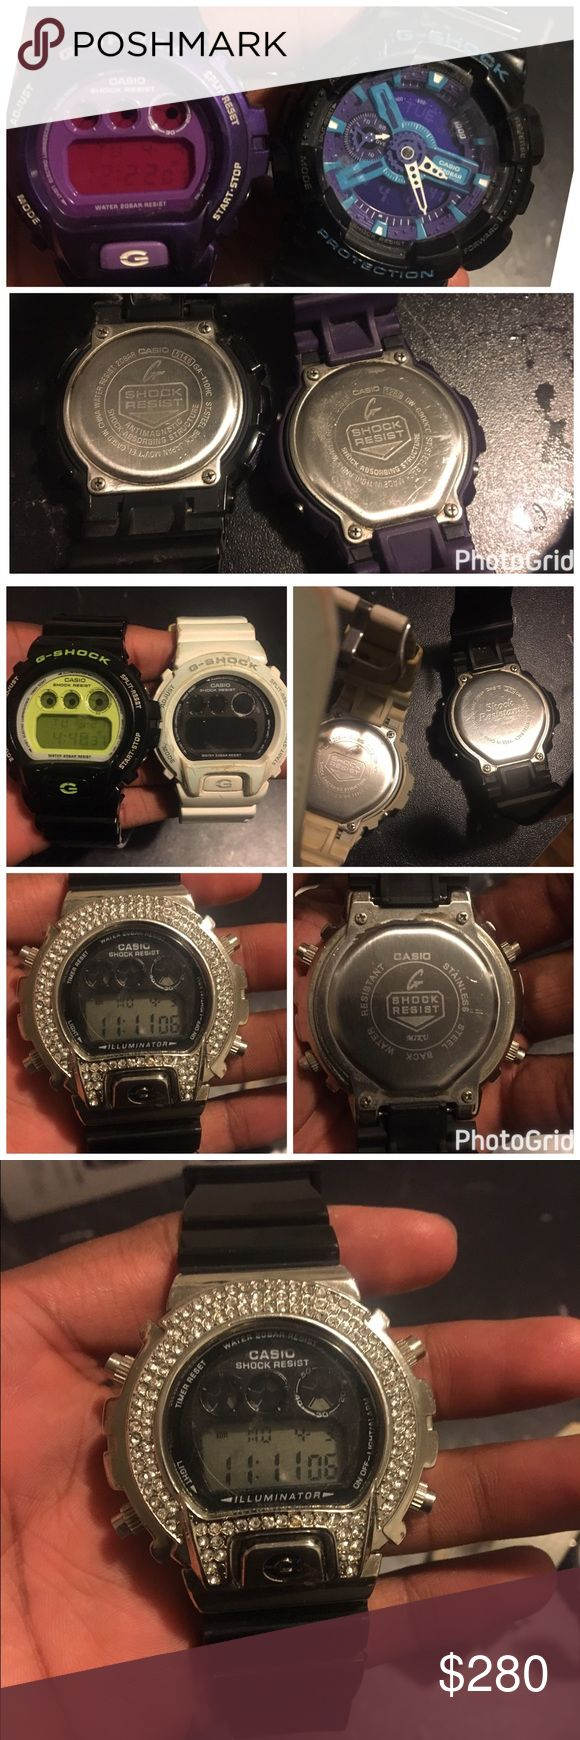 G-shock watches Hello I have 5 g-shock watches for sale  Purple SOLD White  Black and green  Black and blue  And the black and metal  All are authentic Casio watches Casio Accessories Watches